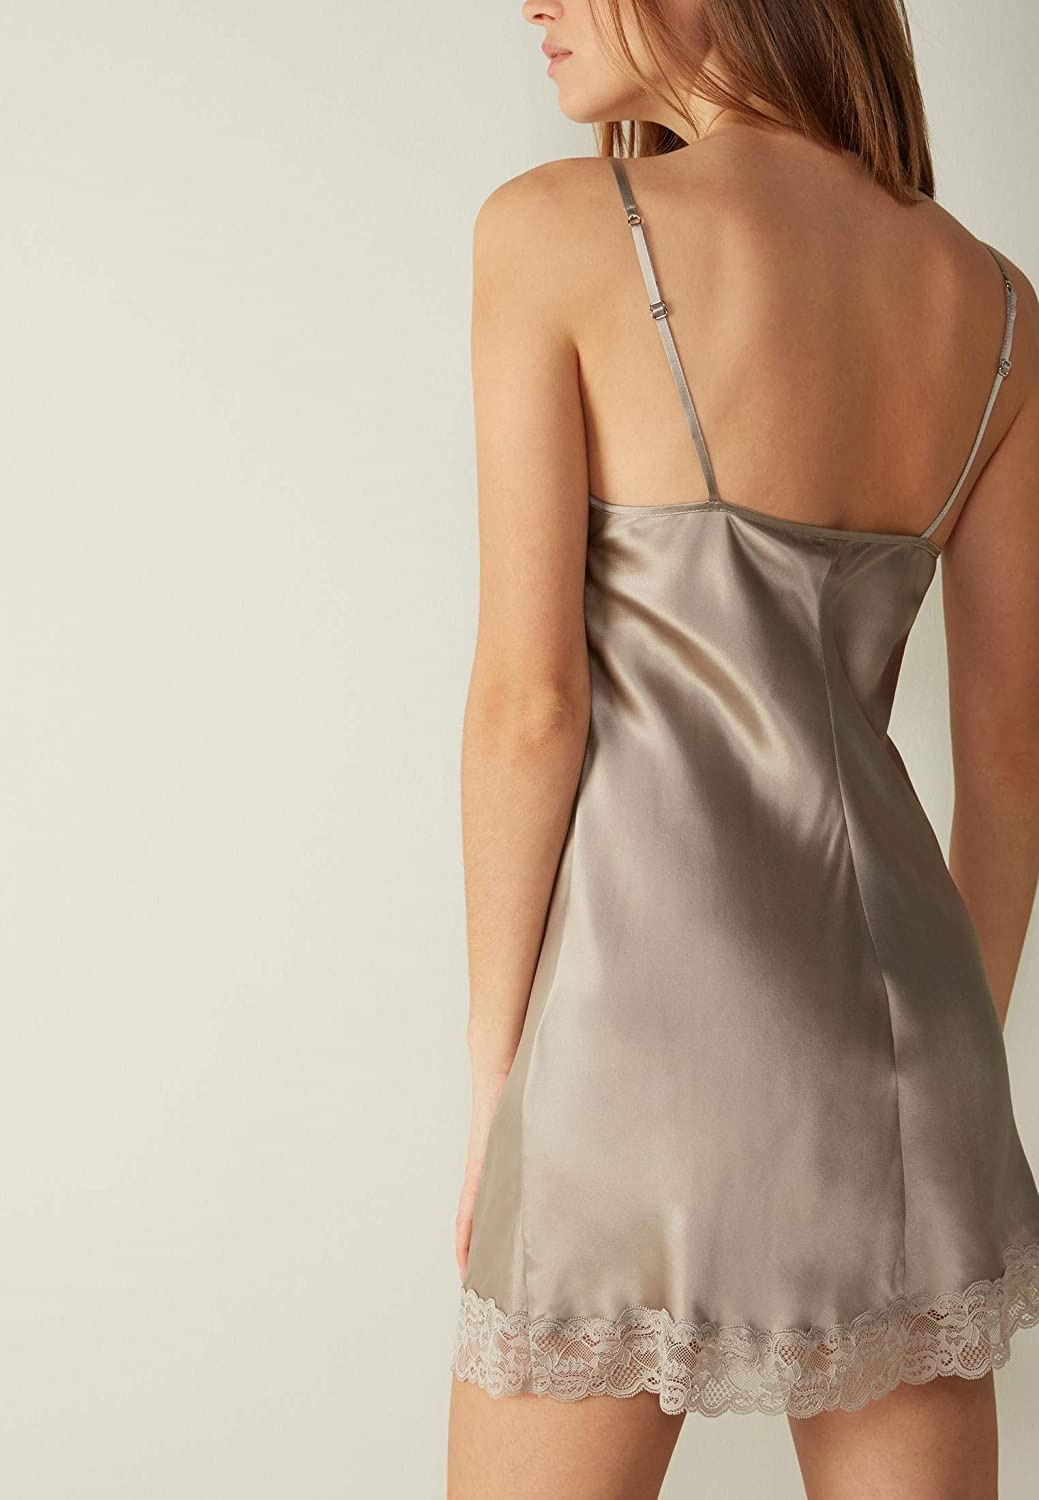 Intimissimi Womens Silk Slip with Lace Insert Detail